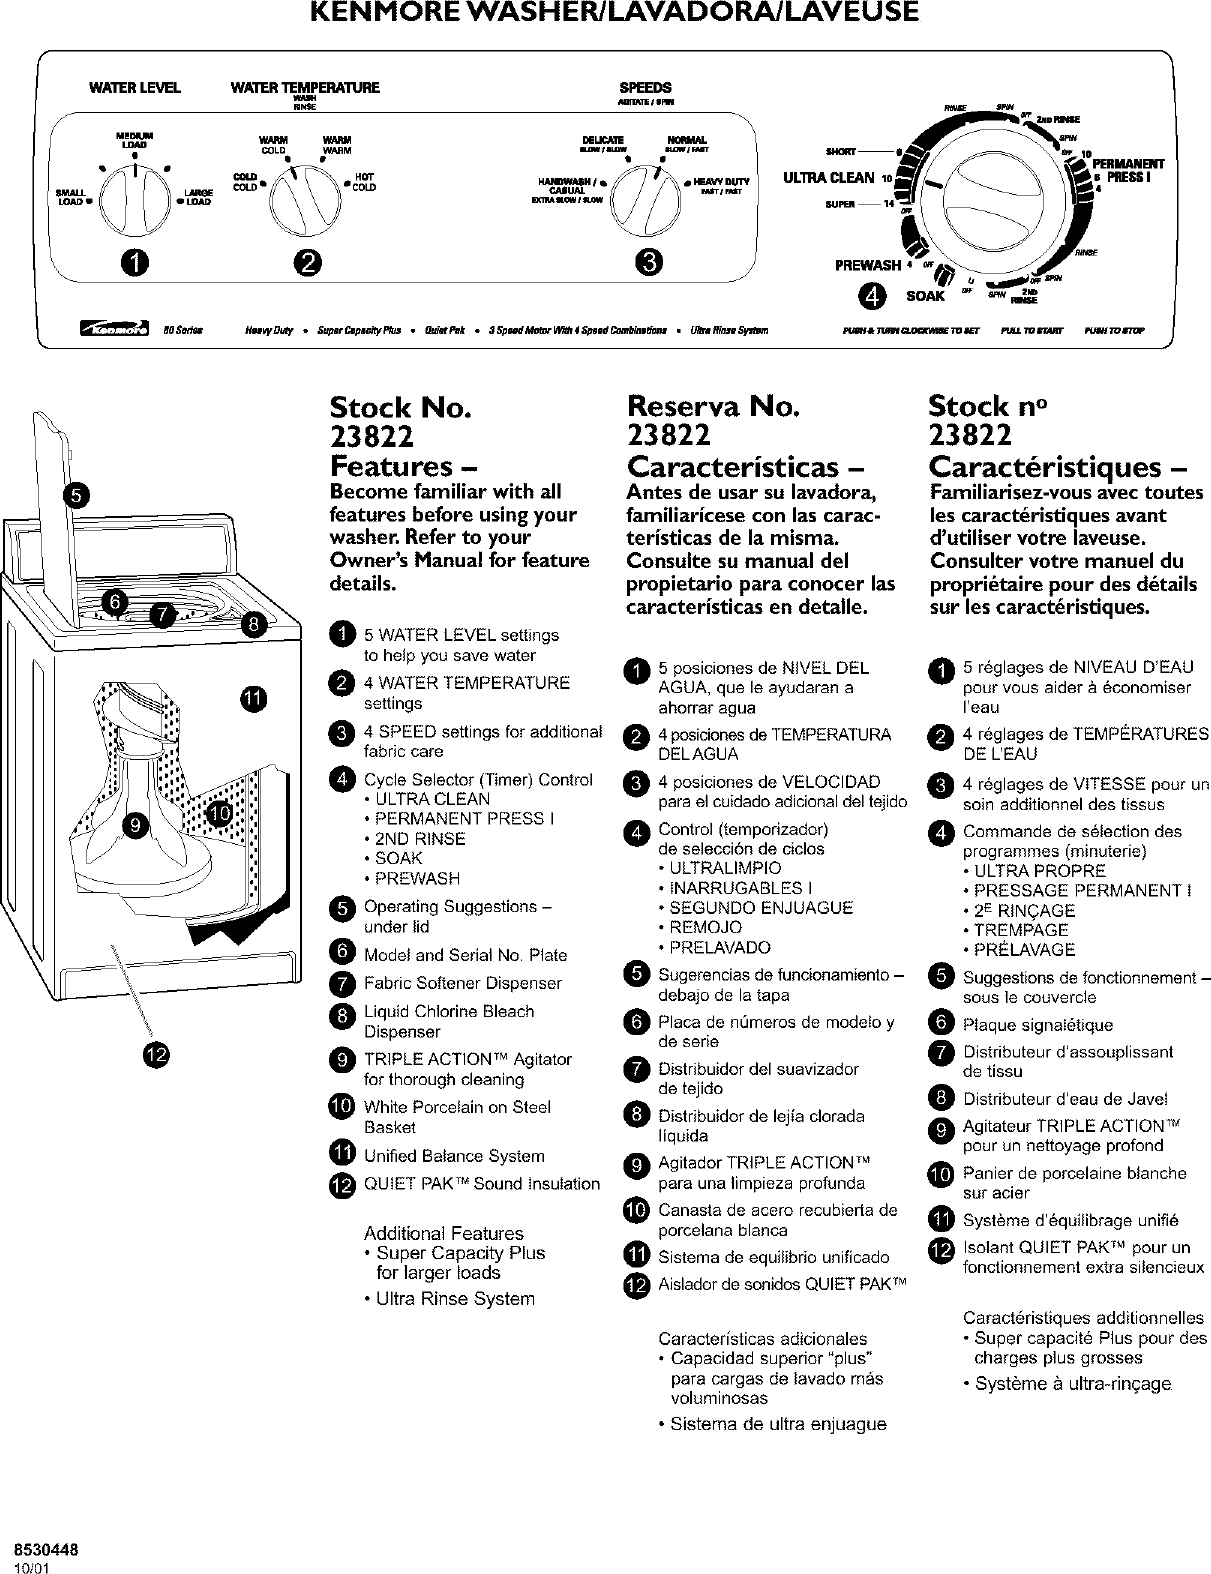 Kenmore Elite 11023012100 User Manual AUTOMATIC WASHER